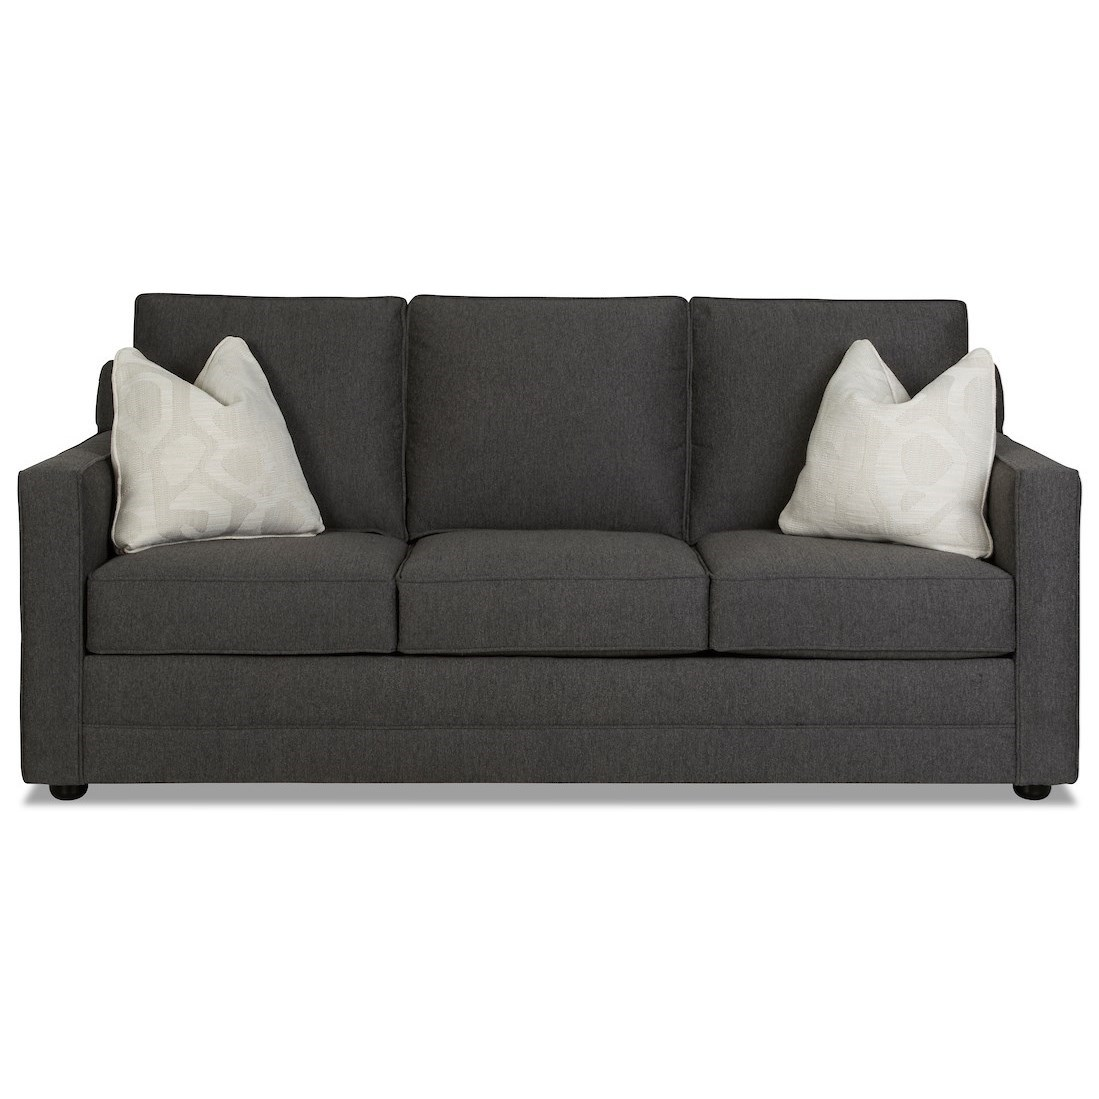 Laudholm Contemporary 80 Inch Sleeper Sofa with Innerspring